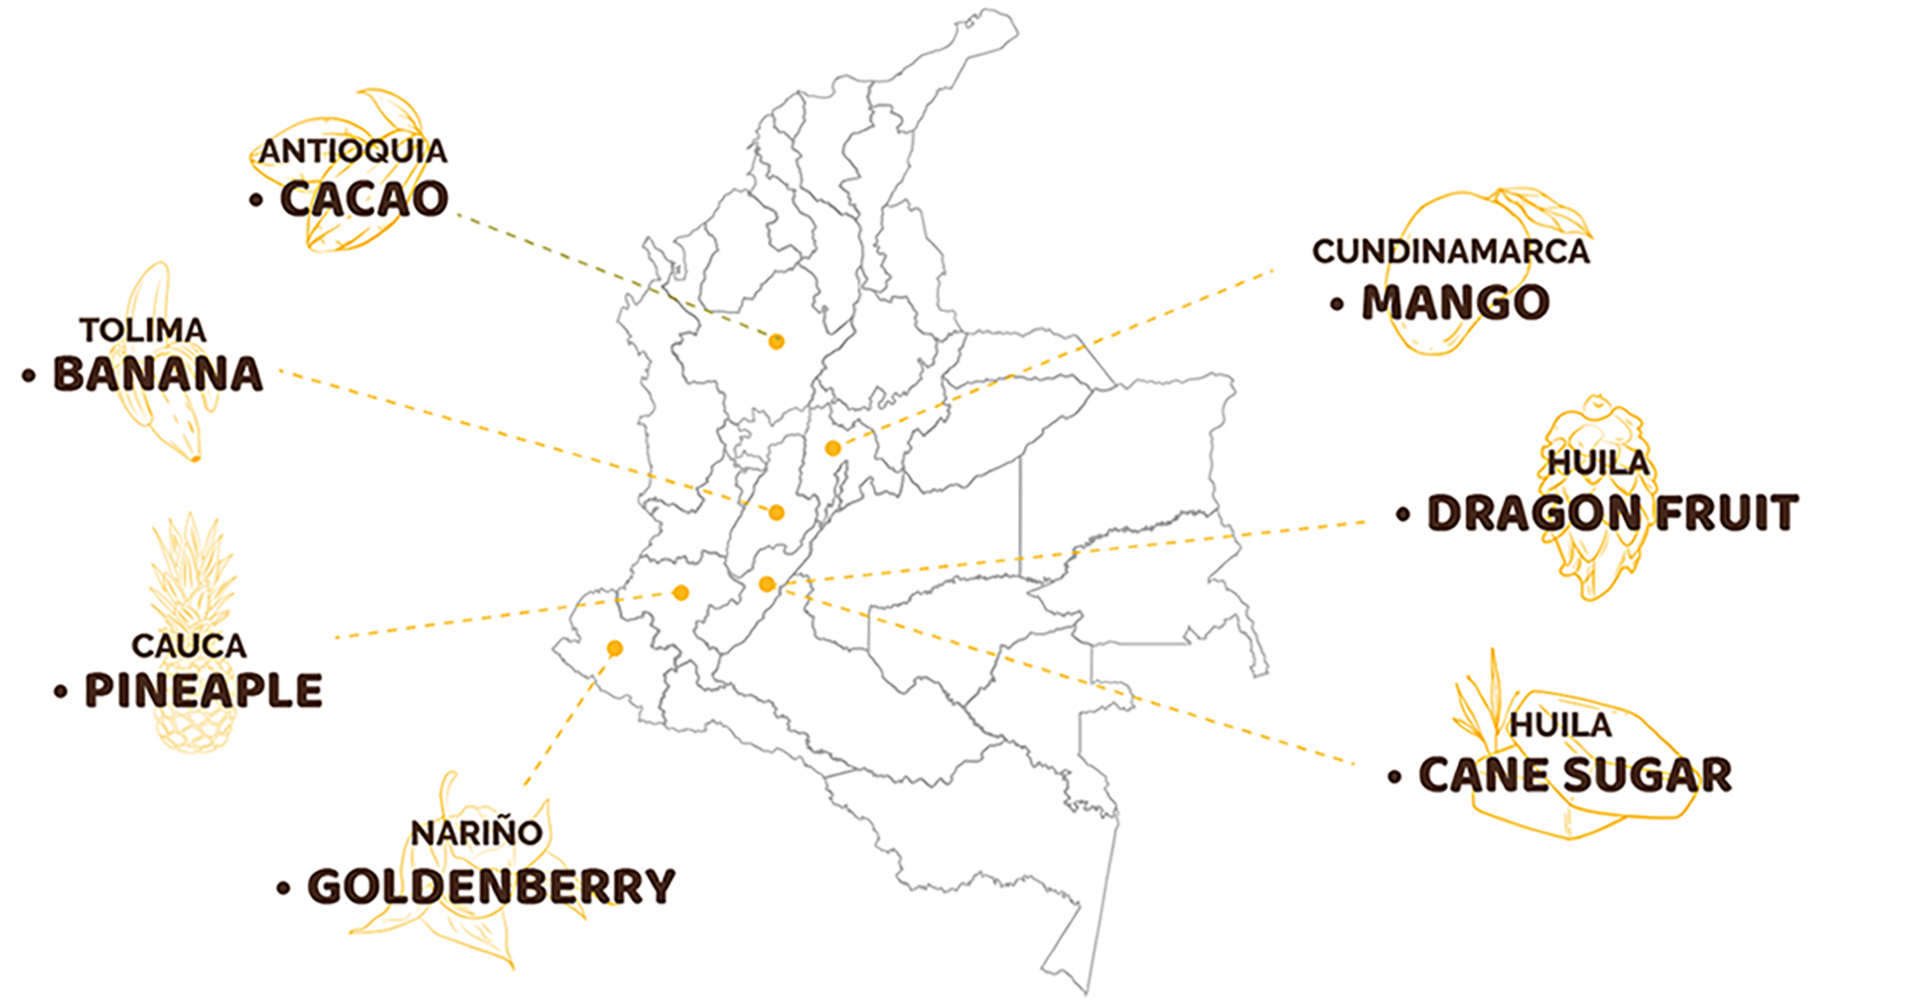 Colombia map infographic, regions where cacao, banana, pineapple, goldenberry, mango, dragon fruit, cane sugar grown